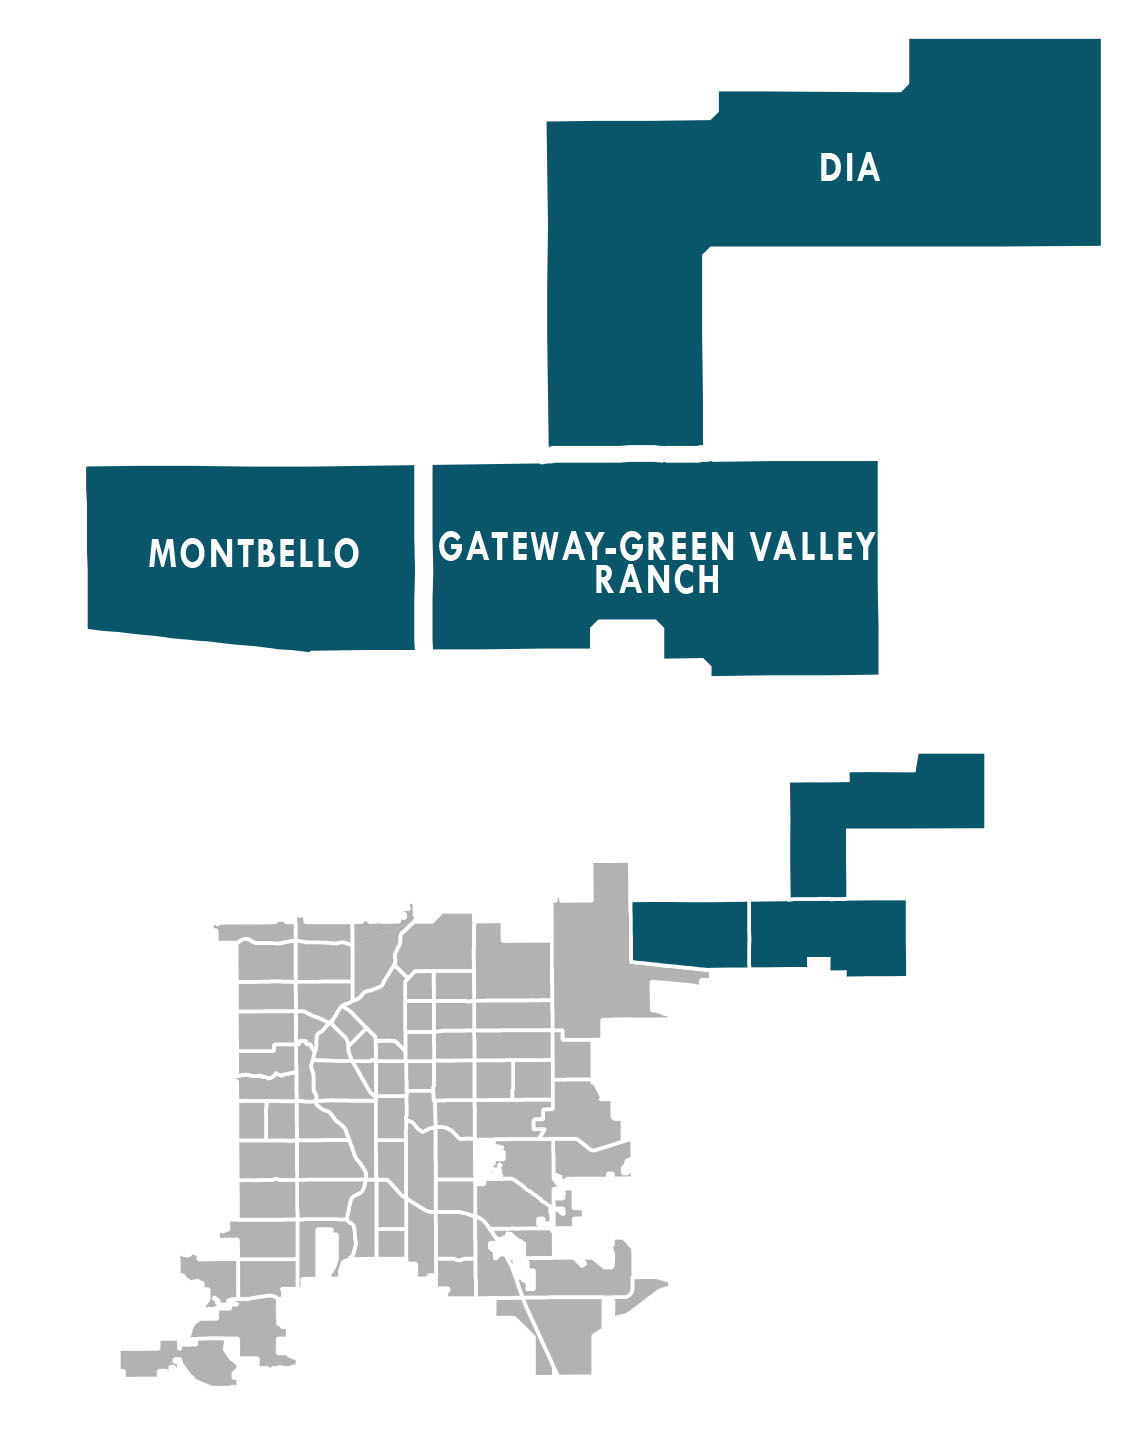 Map of the Far Northeast Area neighborhoods: Montbello, Gateway-Green Valley Ranch, and Denver International Airport